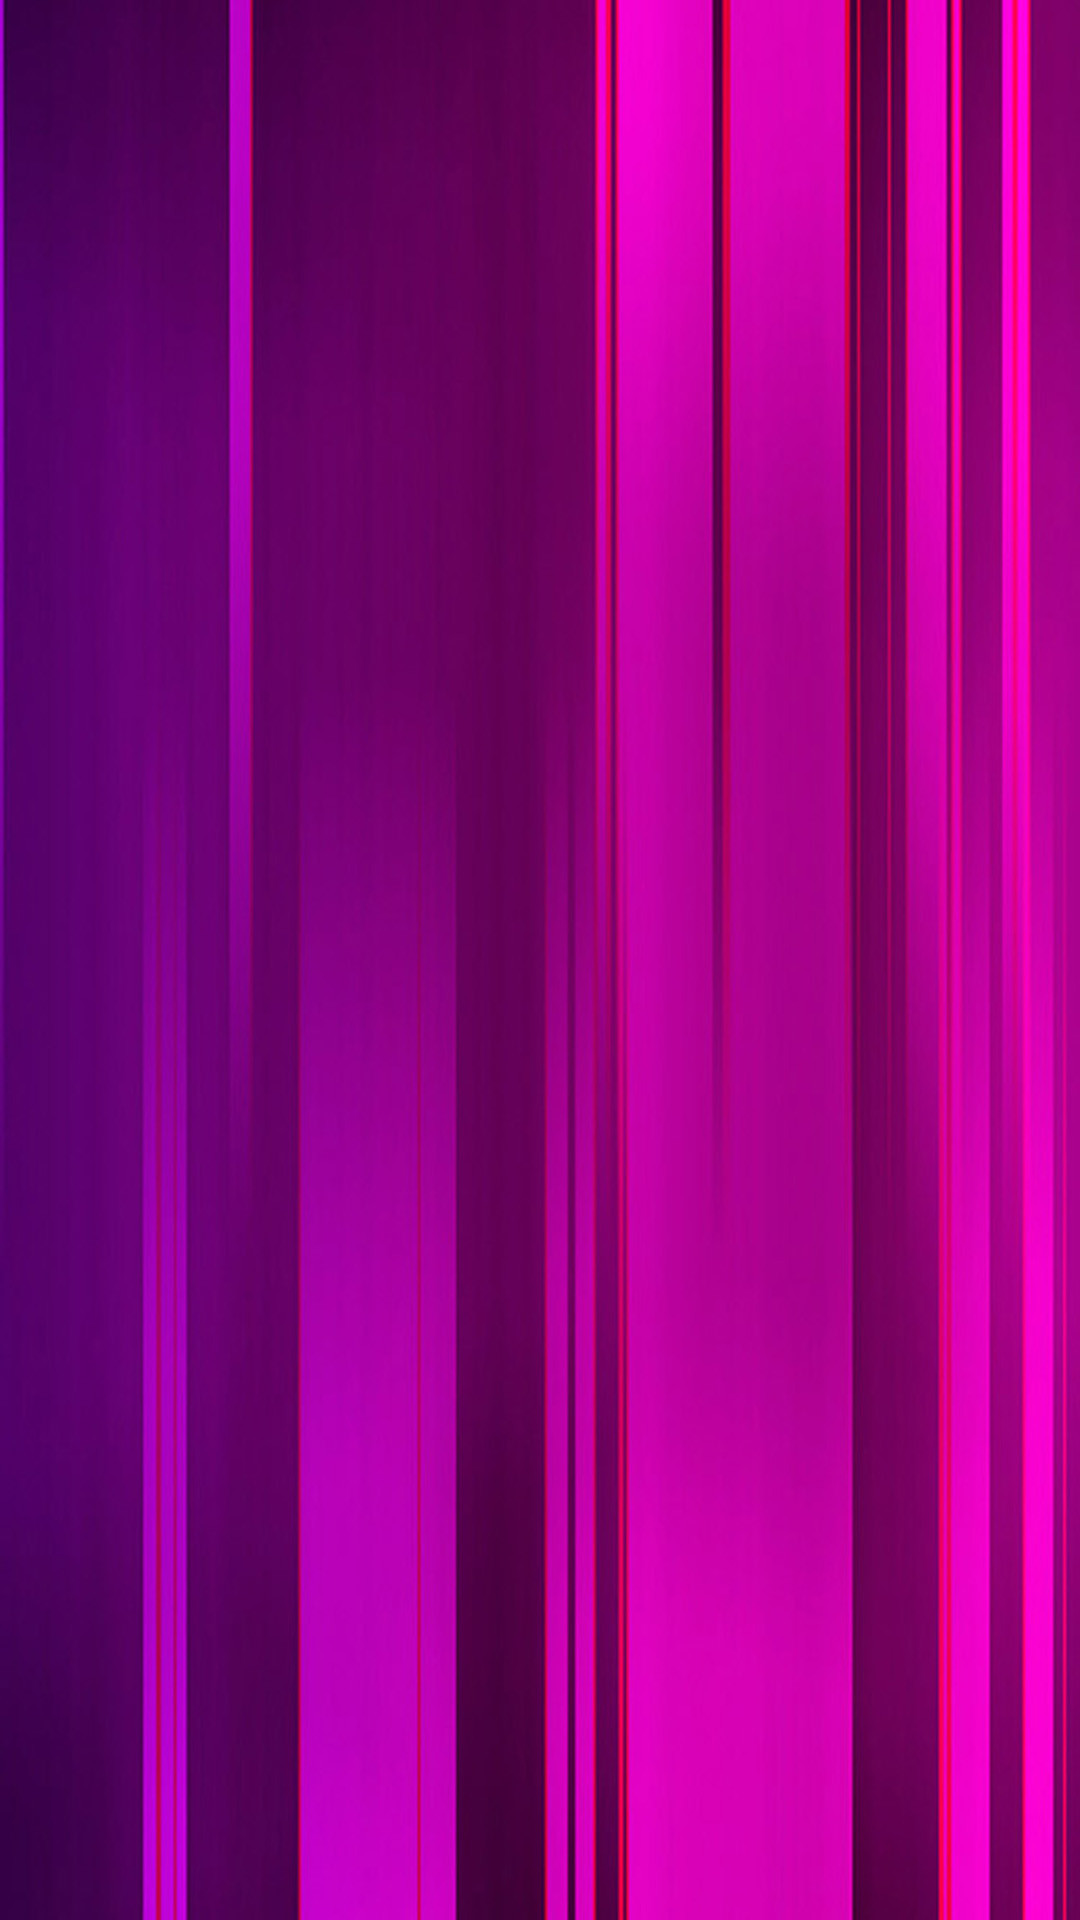 Dark pink background iPhone 6 Wallpaper and iPhone 6 Plus Wallpapers